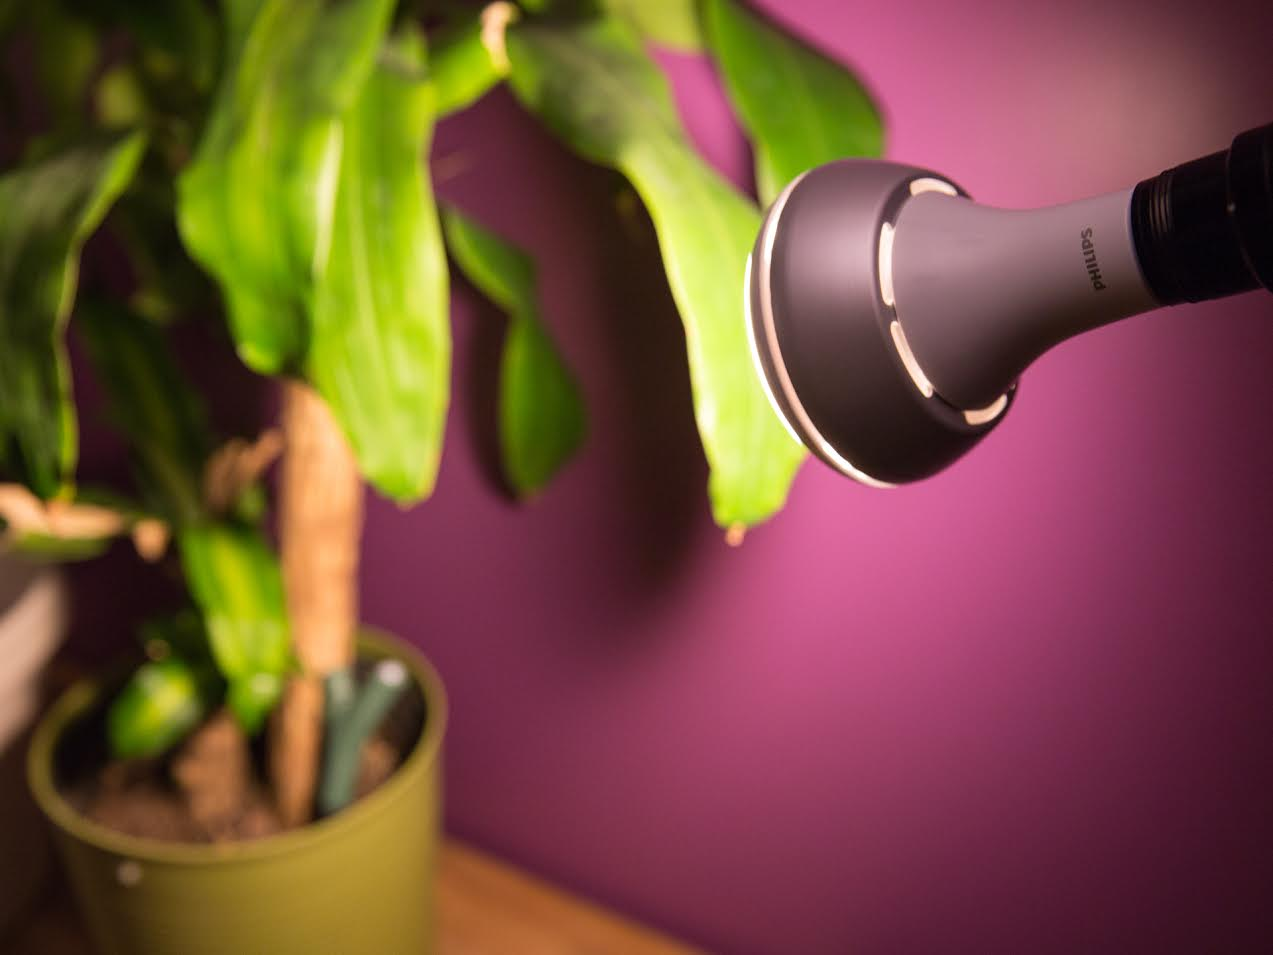 Parrot Flower Power and Philips Hue LEDs